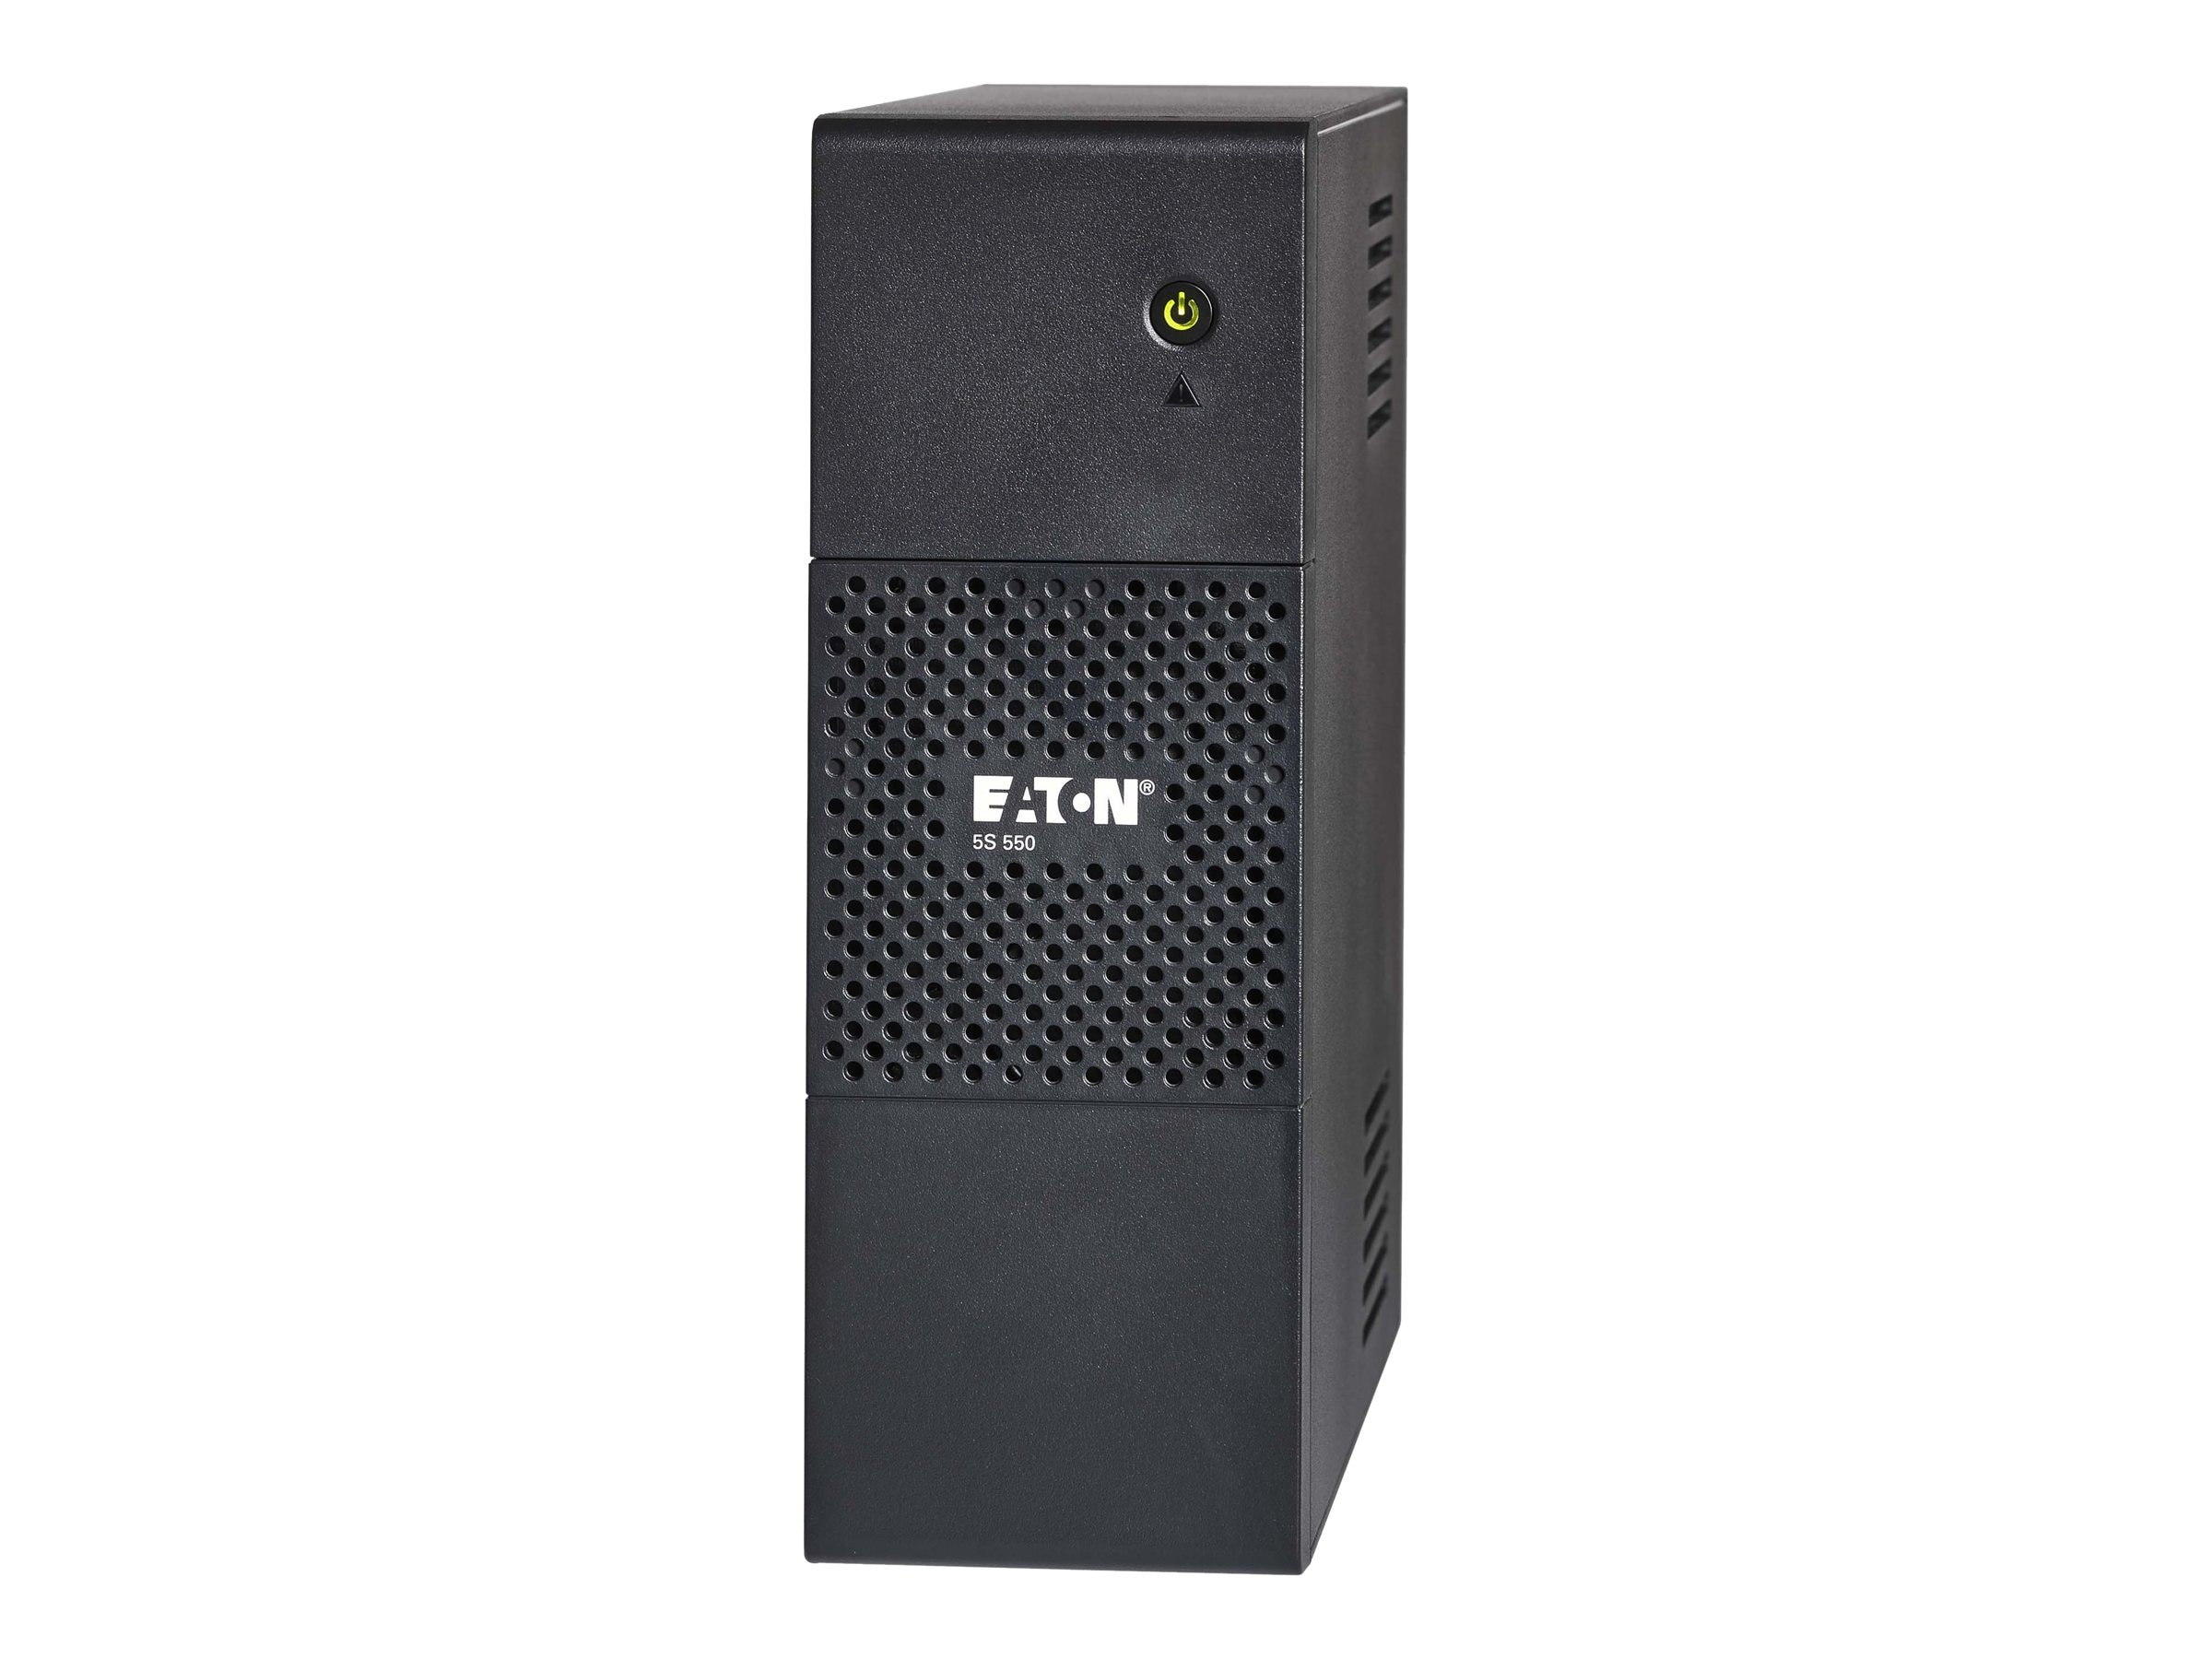 Eaton 5S 700VA 420W Global 208 230V Line-interactive Tower UPS C14 Input (6) C13 Outlets USB, 5S700G, 15792506, Battery Backup/UPS